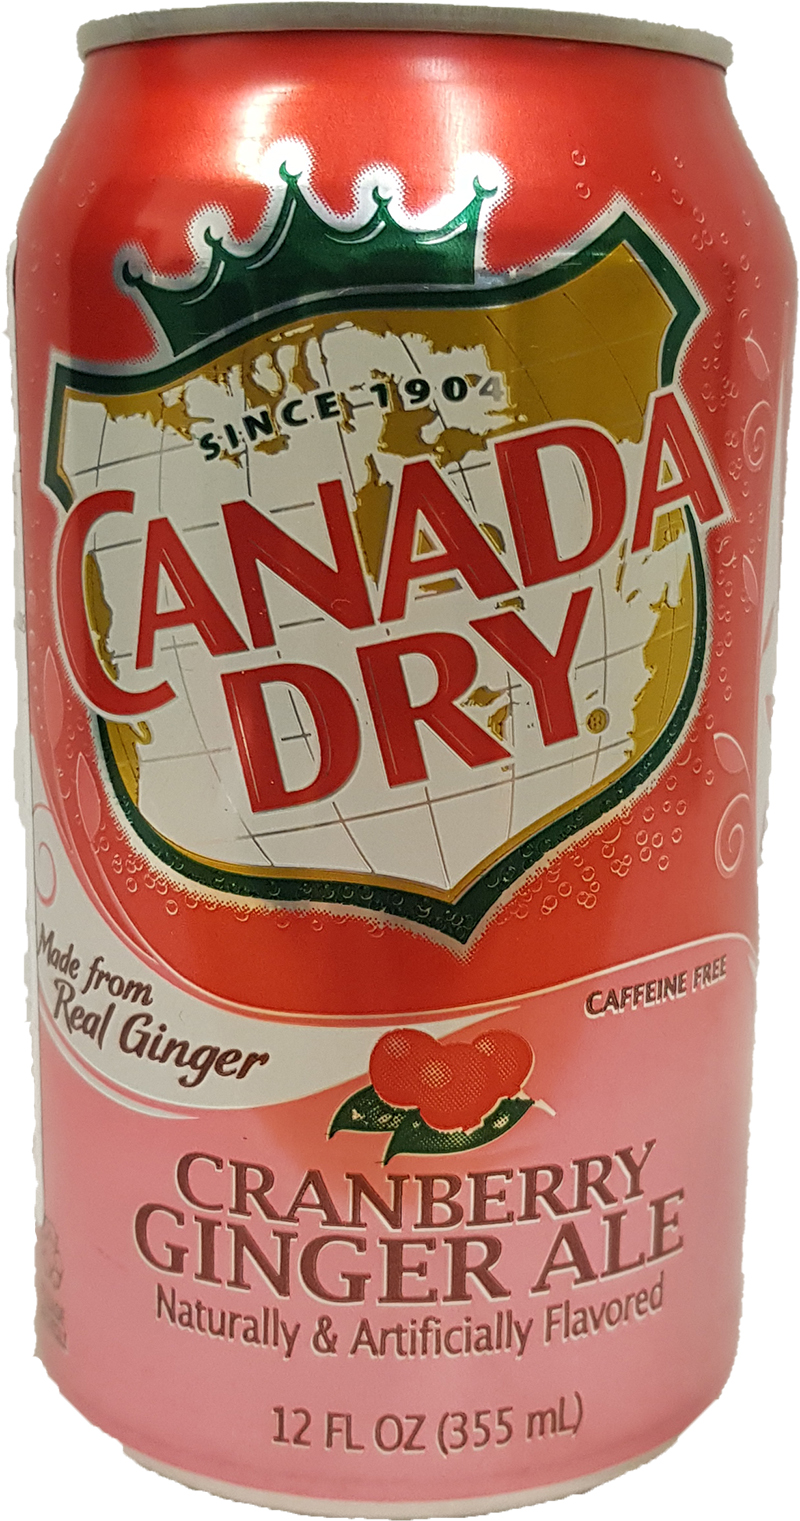 Canada Dry - Cranberry Ginger Ale 355 ml (zzgl. 0,25 EUR Pfand)